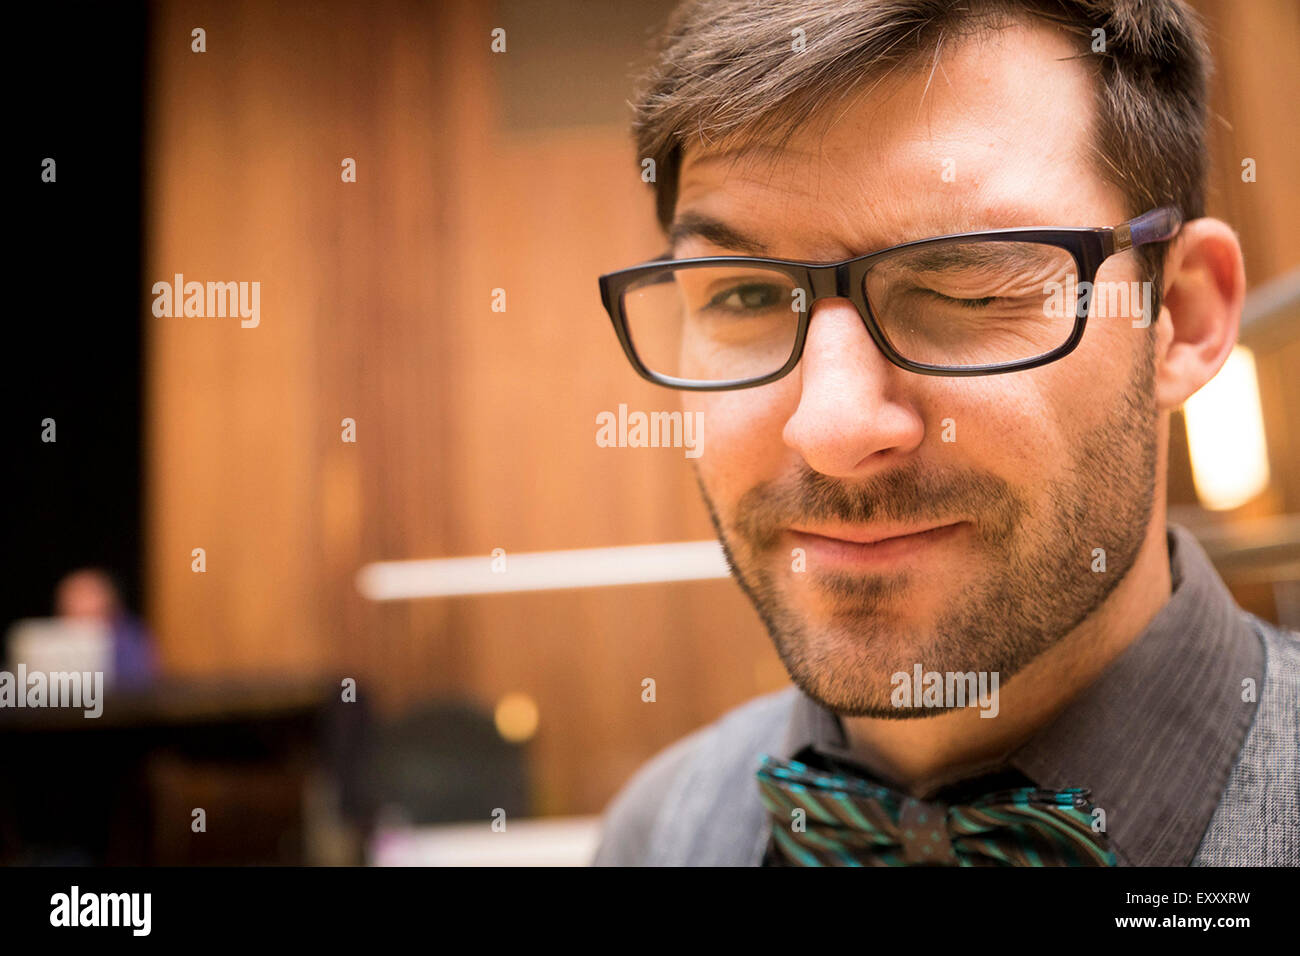 Man dressed up wearing a bow tie and wearing a peculiar expression - Stock Image